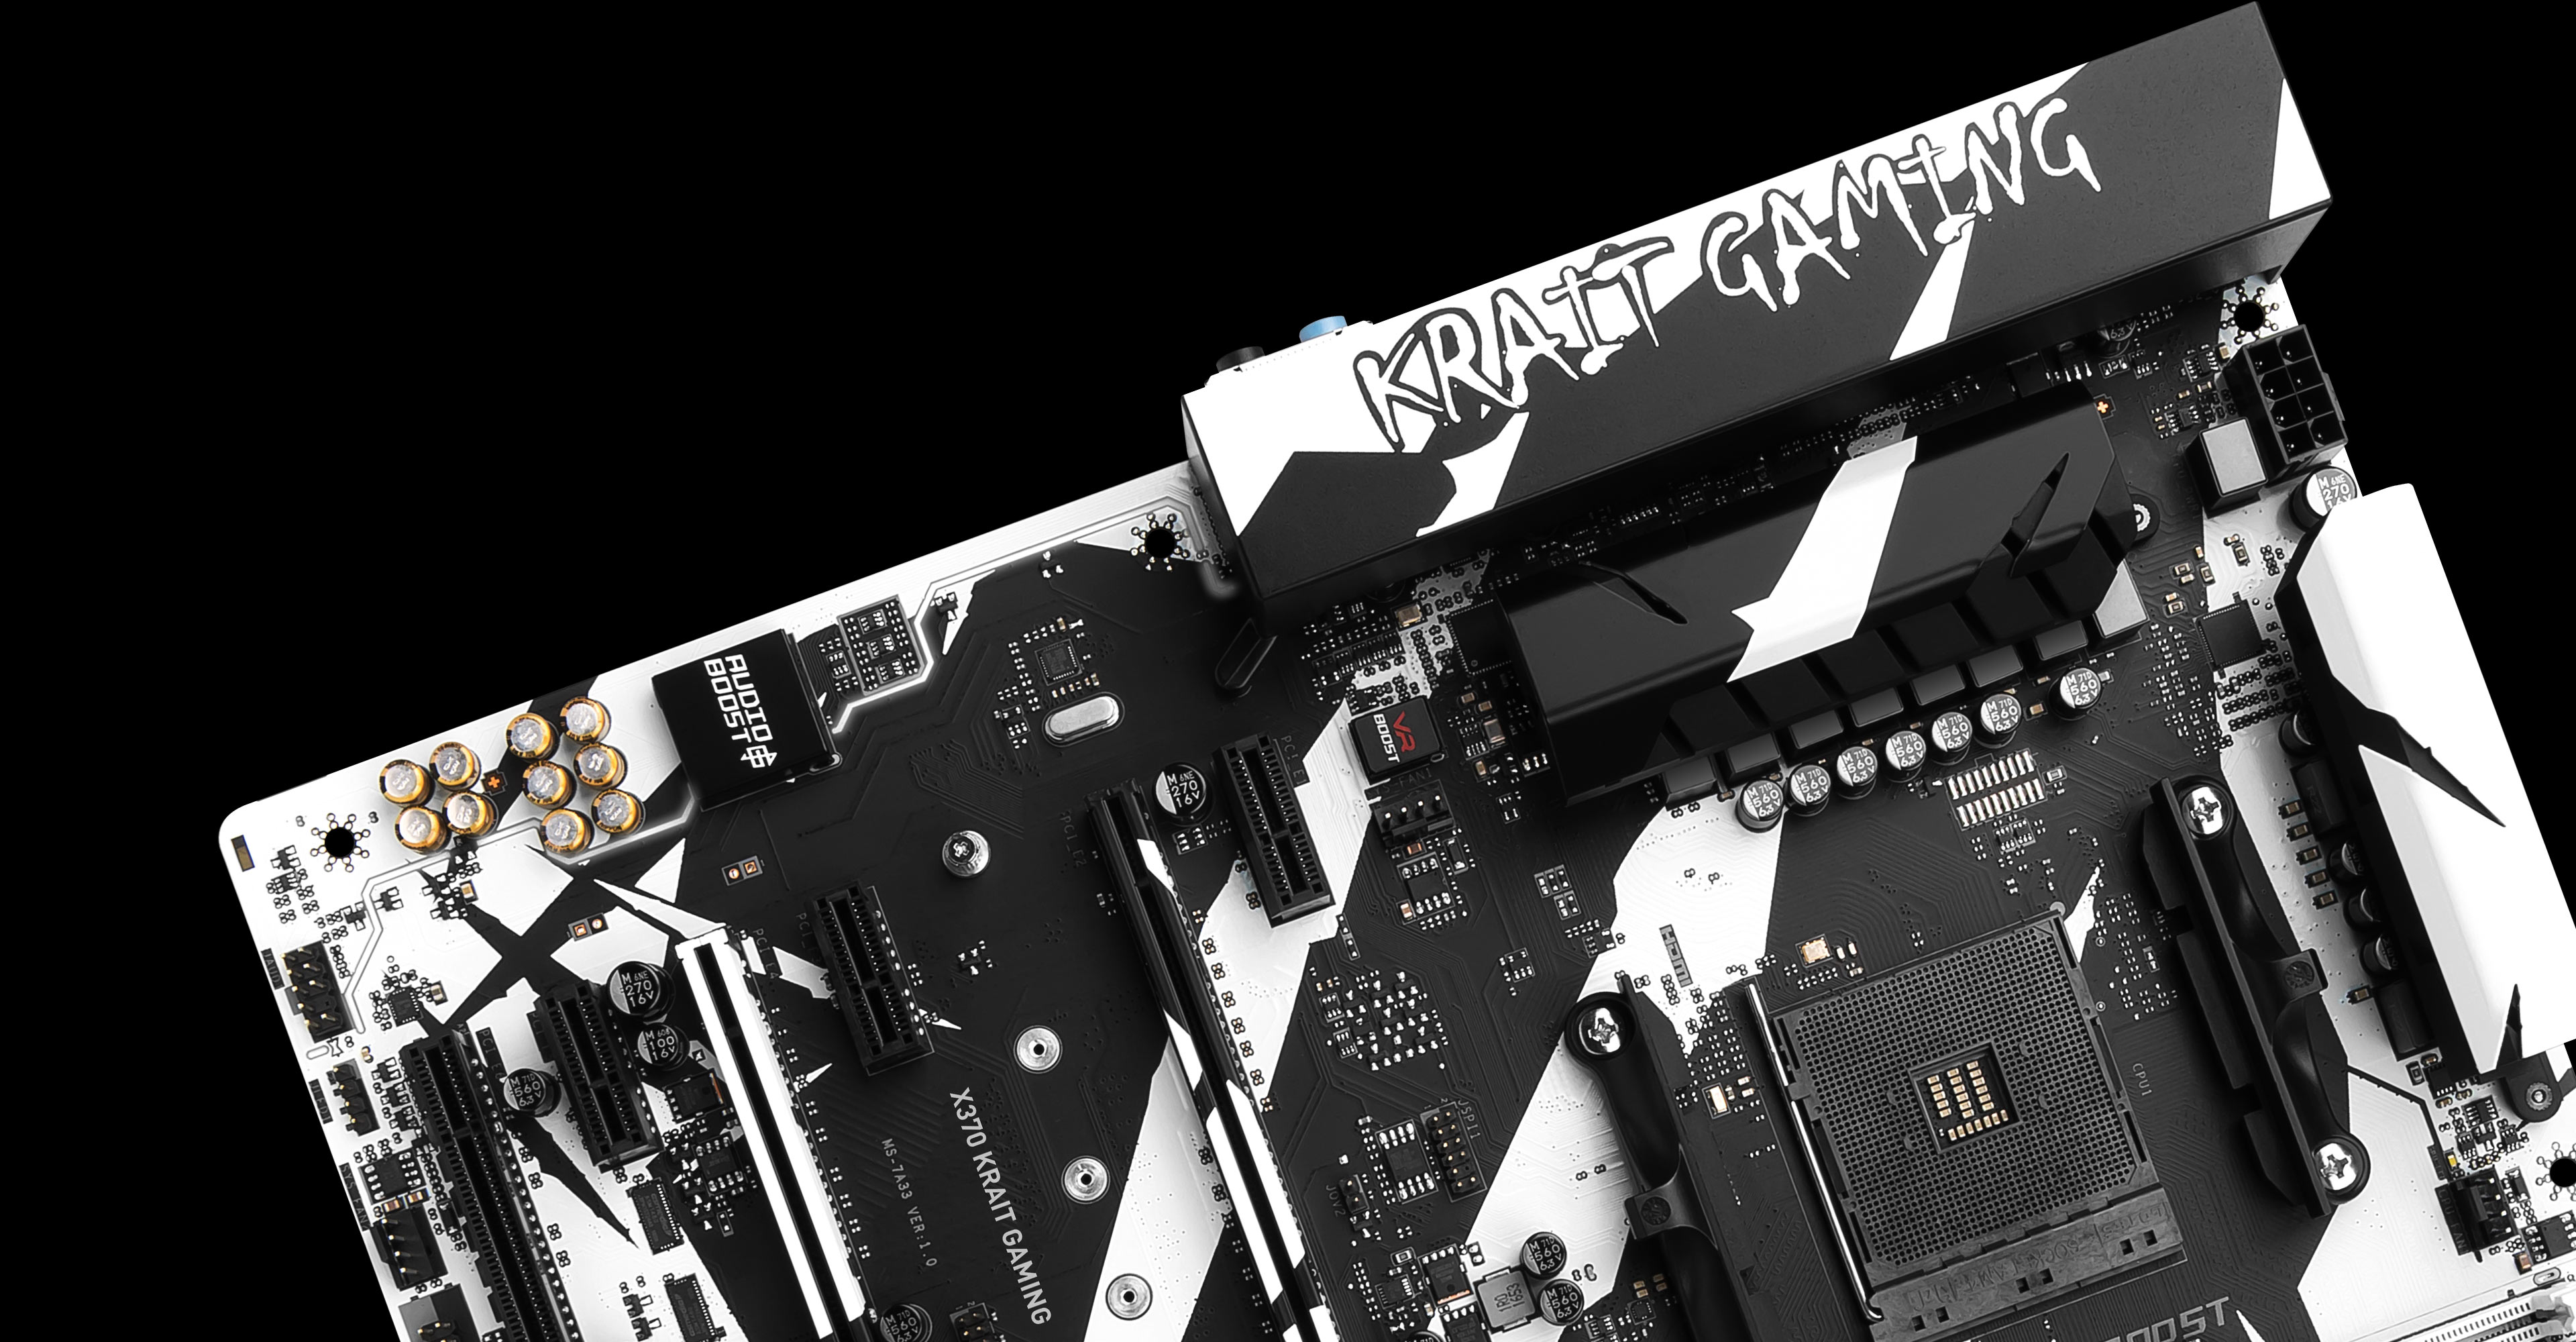 X370 KRAIT GAMING | Motherboard - The world leader in motherboard